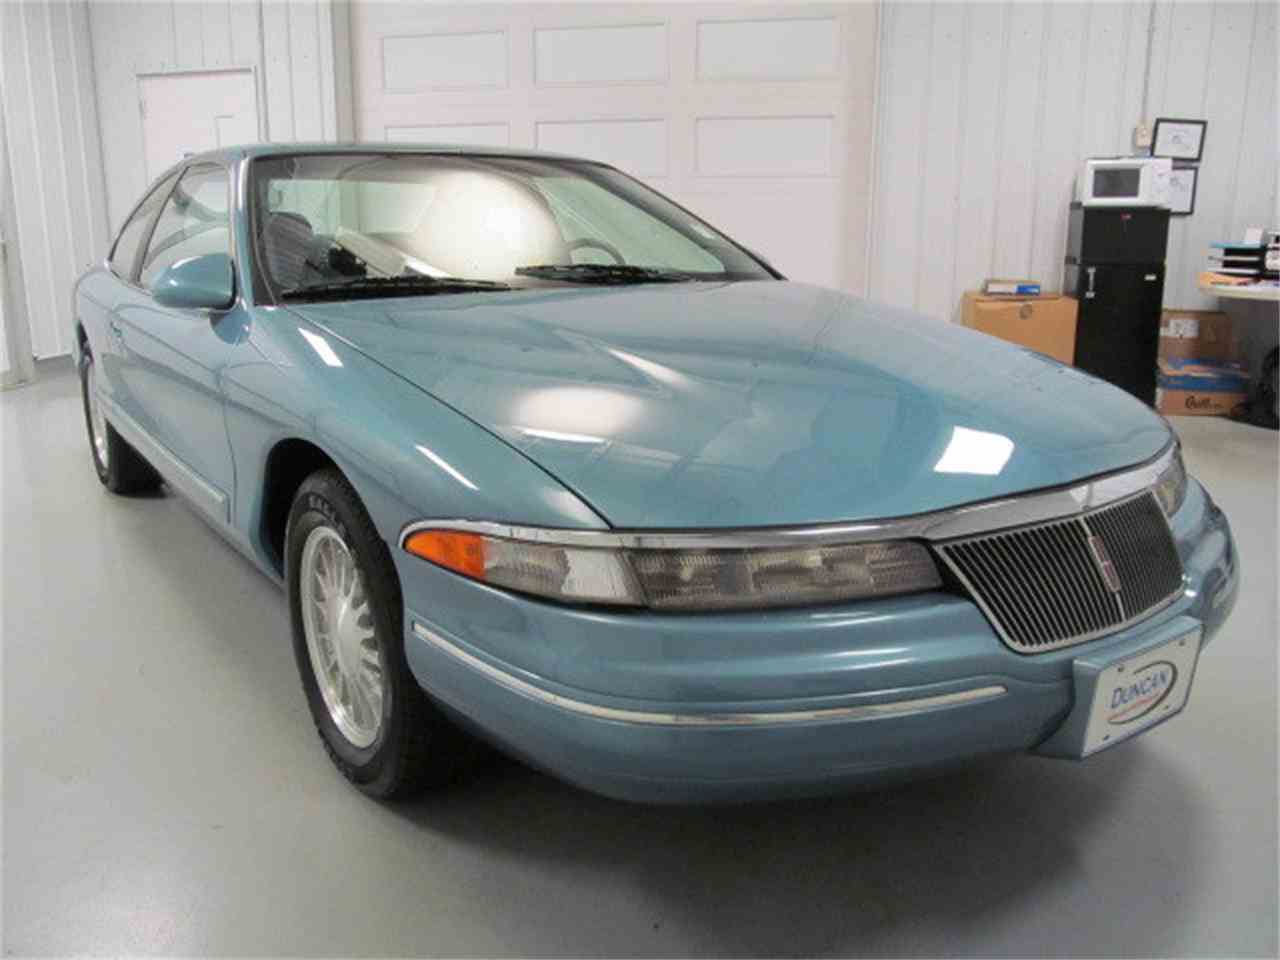 Large Picture of '93 Mark VIII - $9,900.00 Offered by Duncan Imports & Classic Cars - JL9Z